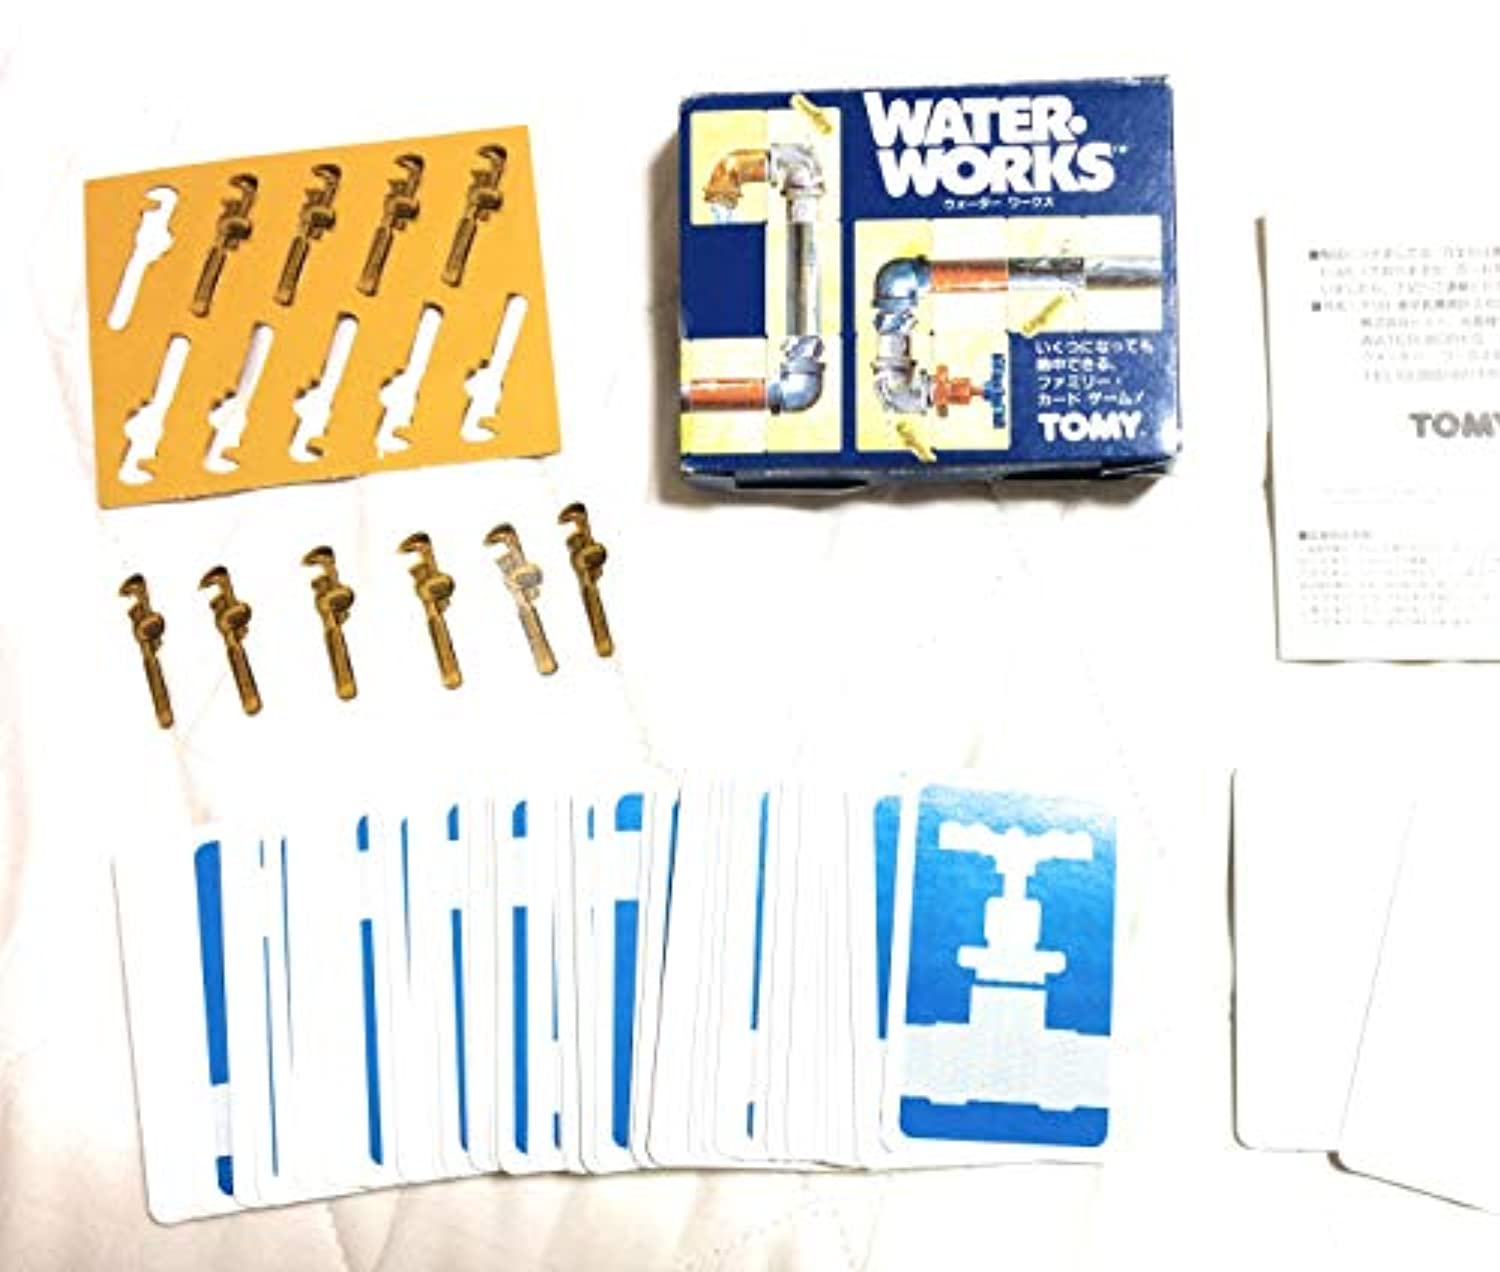 WATER?WORKSウォーターワークス/株式会社トミー